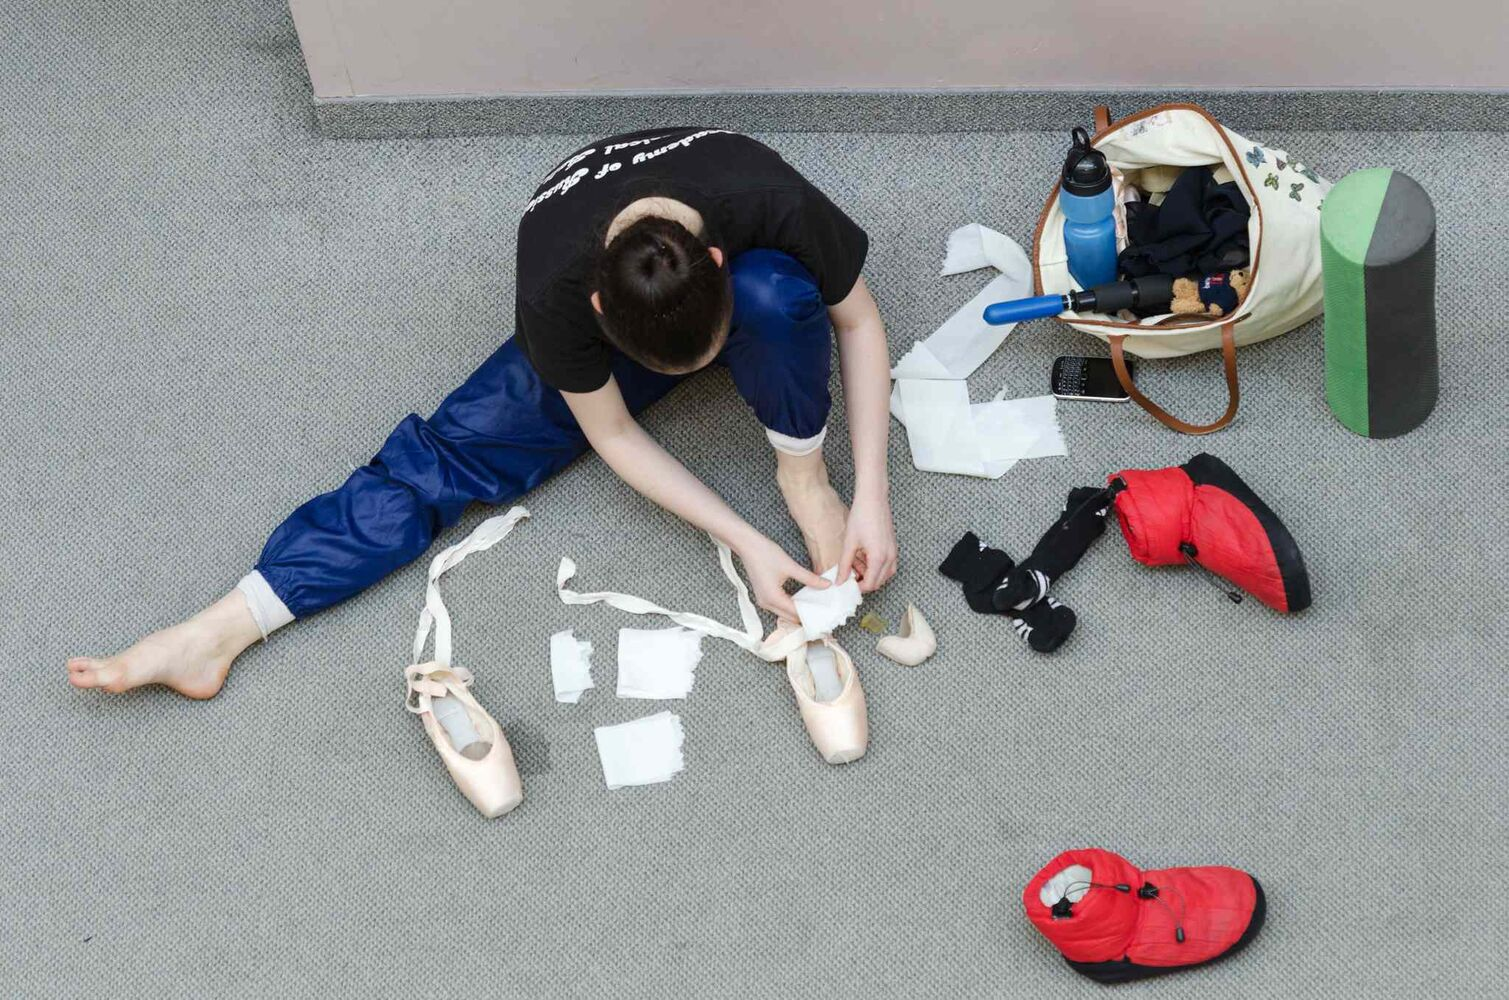 A dancer preps her ballet shoes. (EMILY CUMMING / WINNIPEG FREE PRESS)